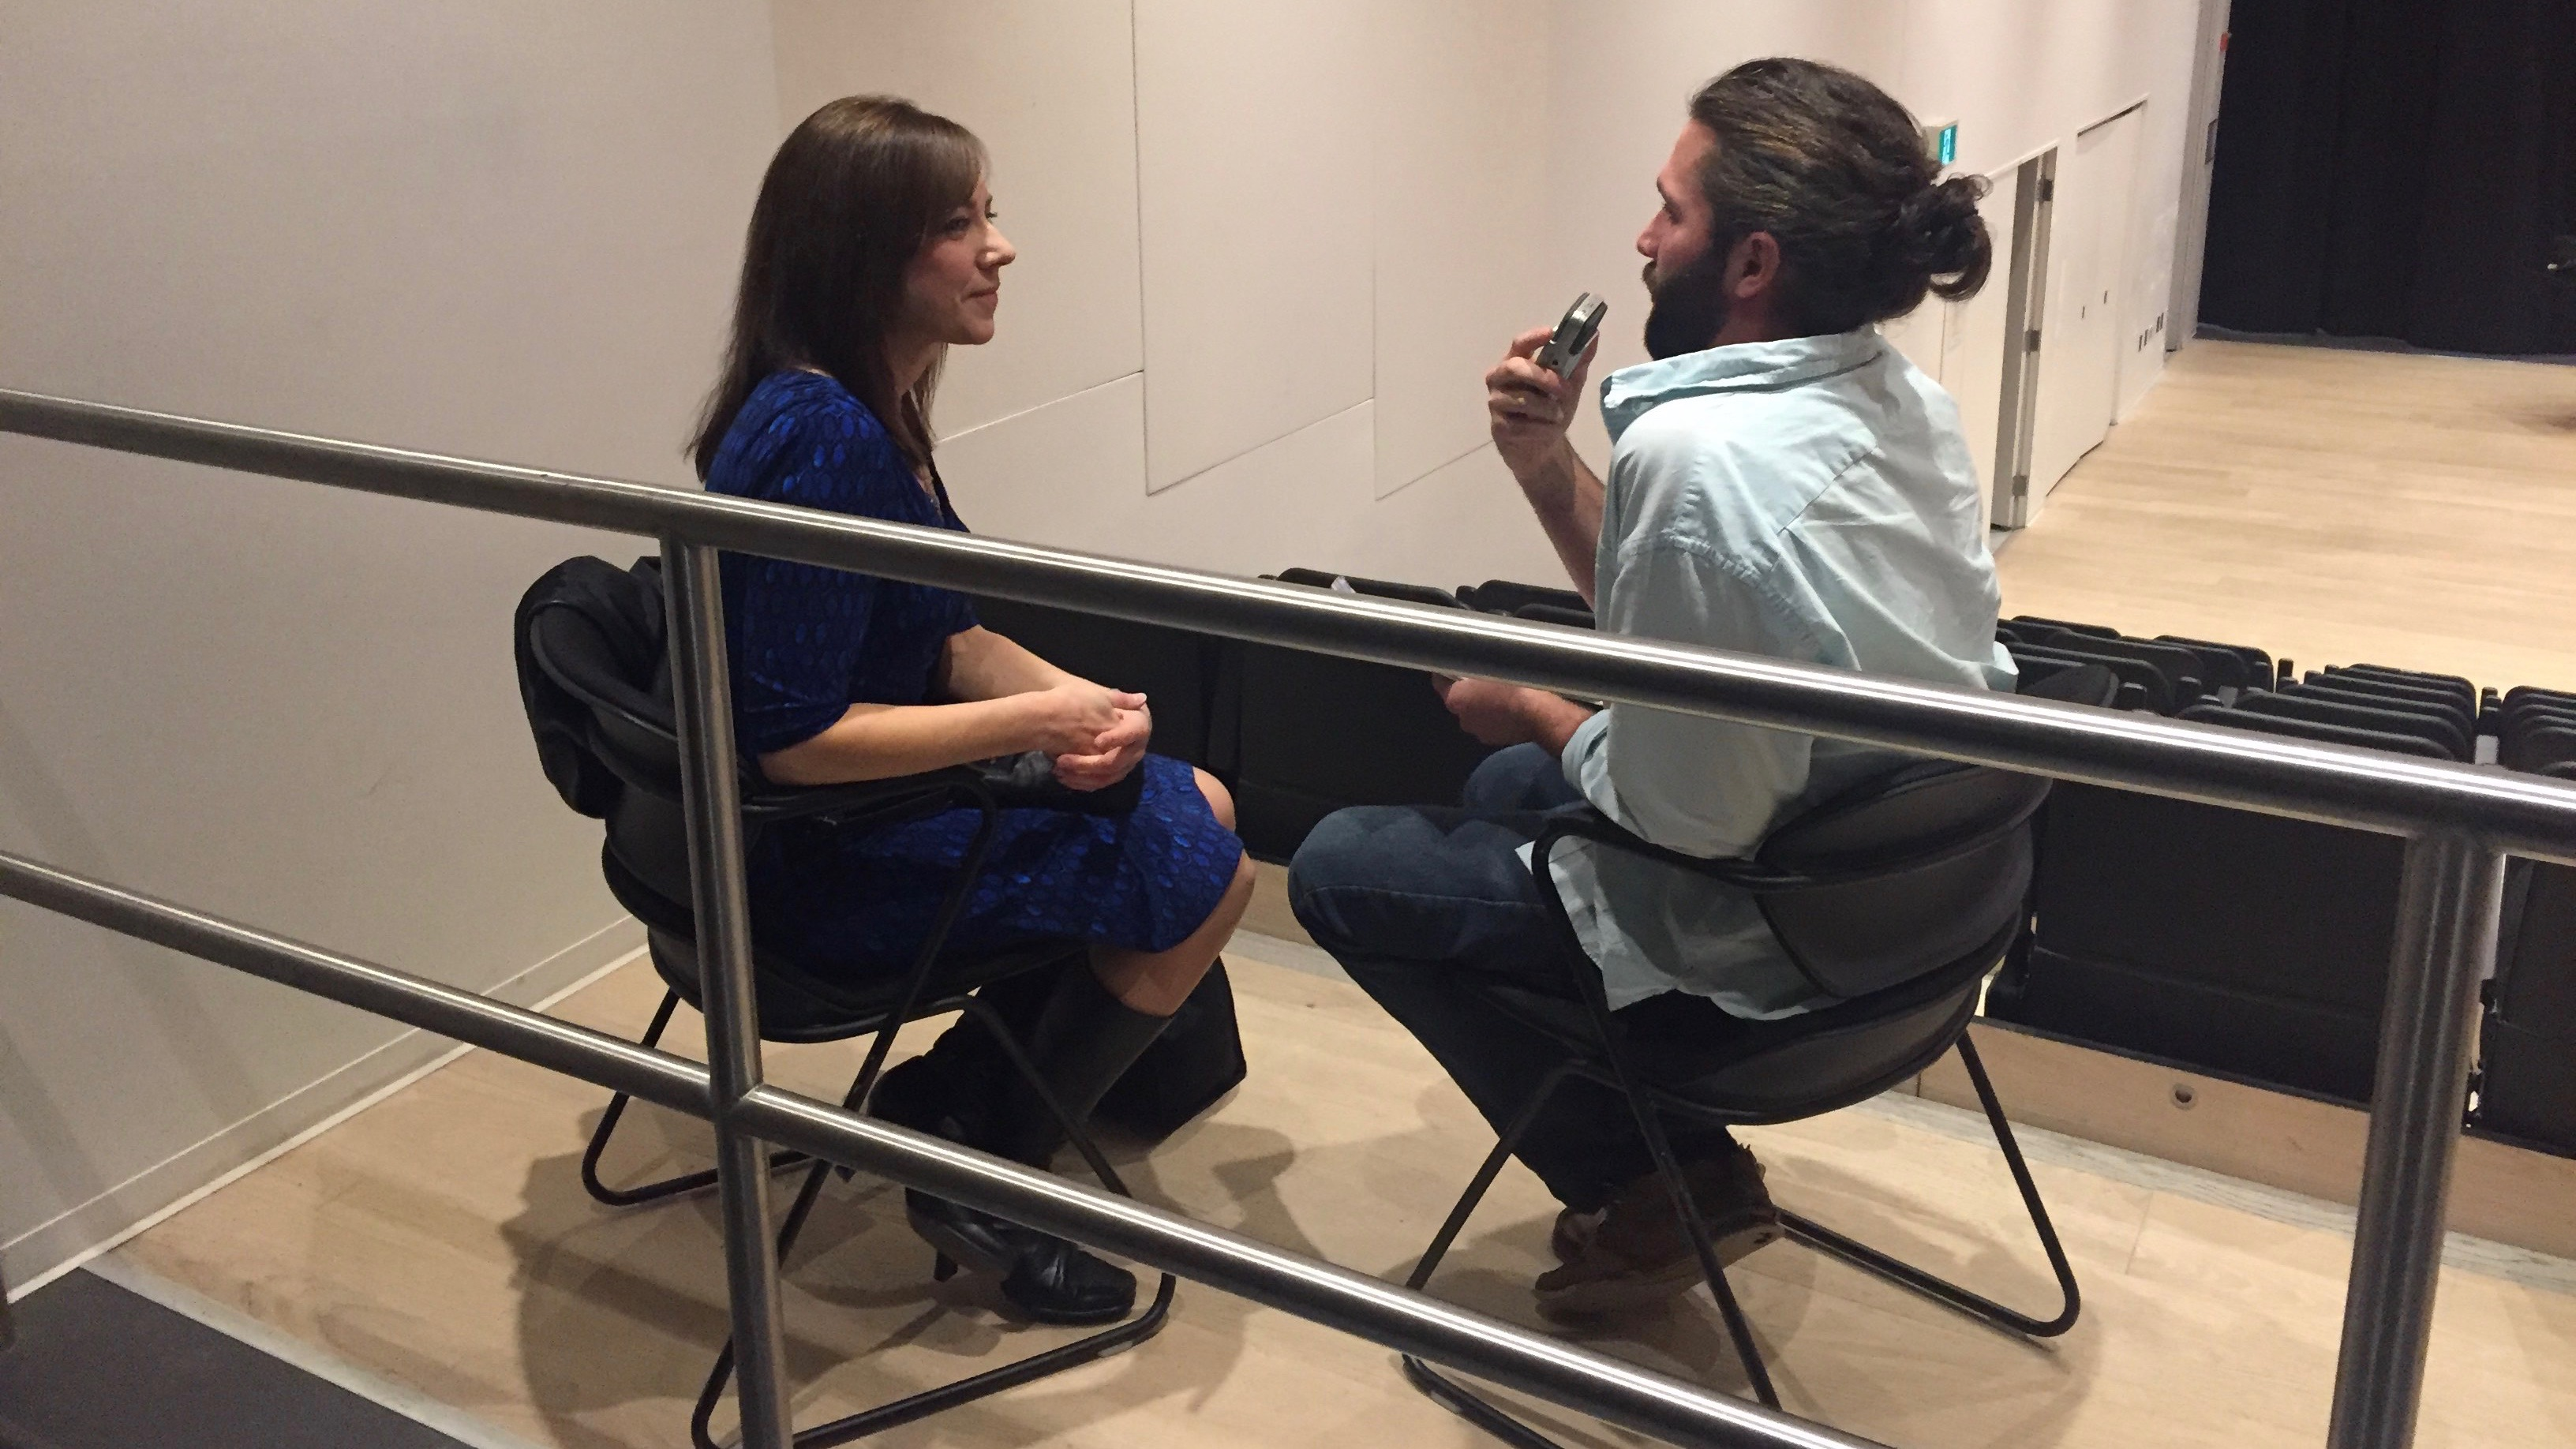 Seth Earle interviews Bobbi-Jean MacKinnon at Halifax Central Library